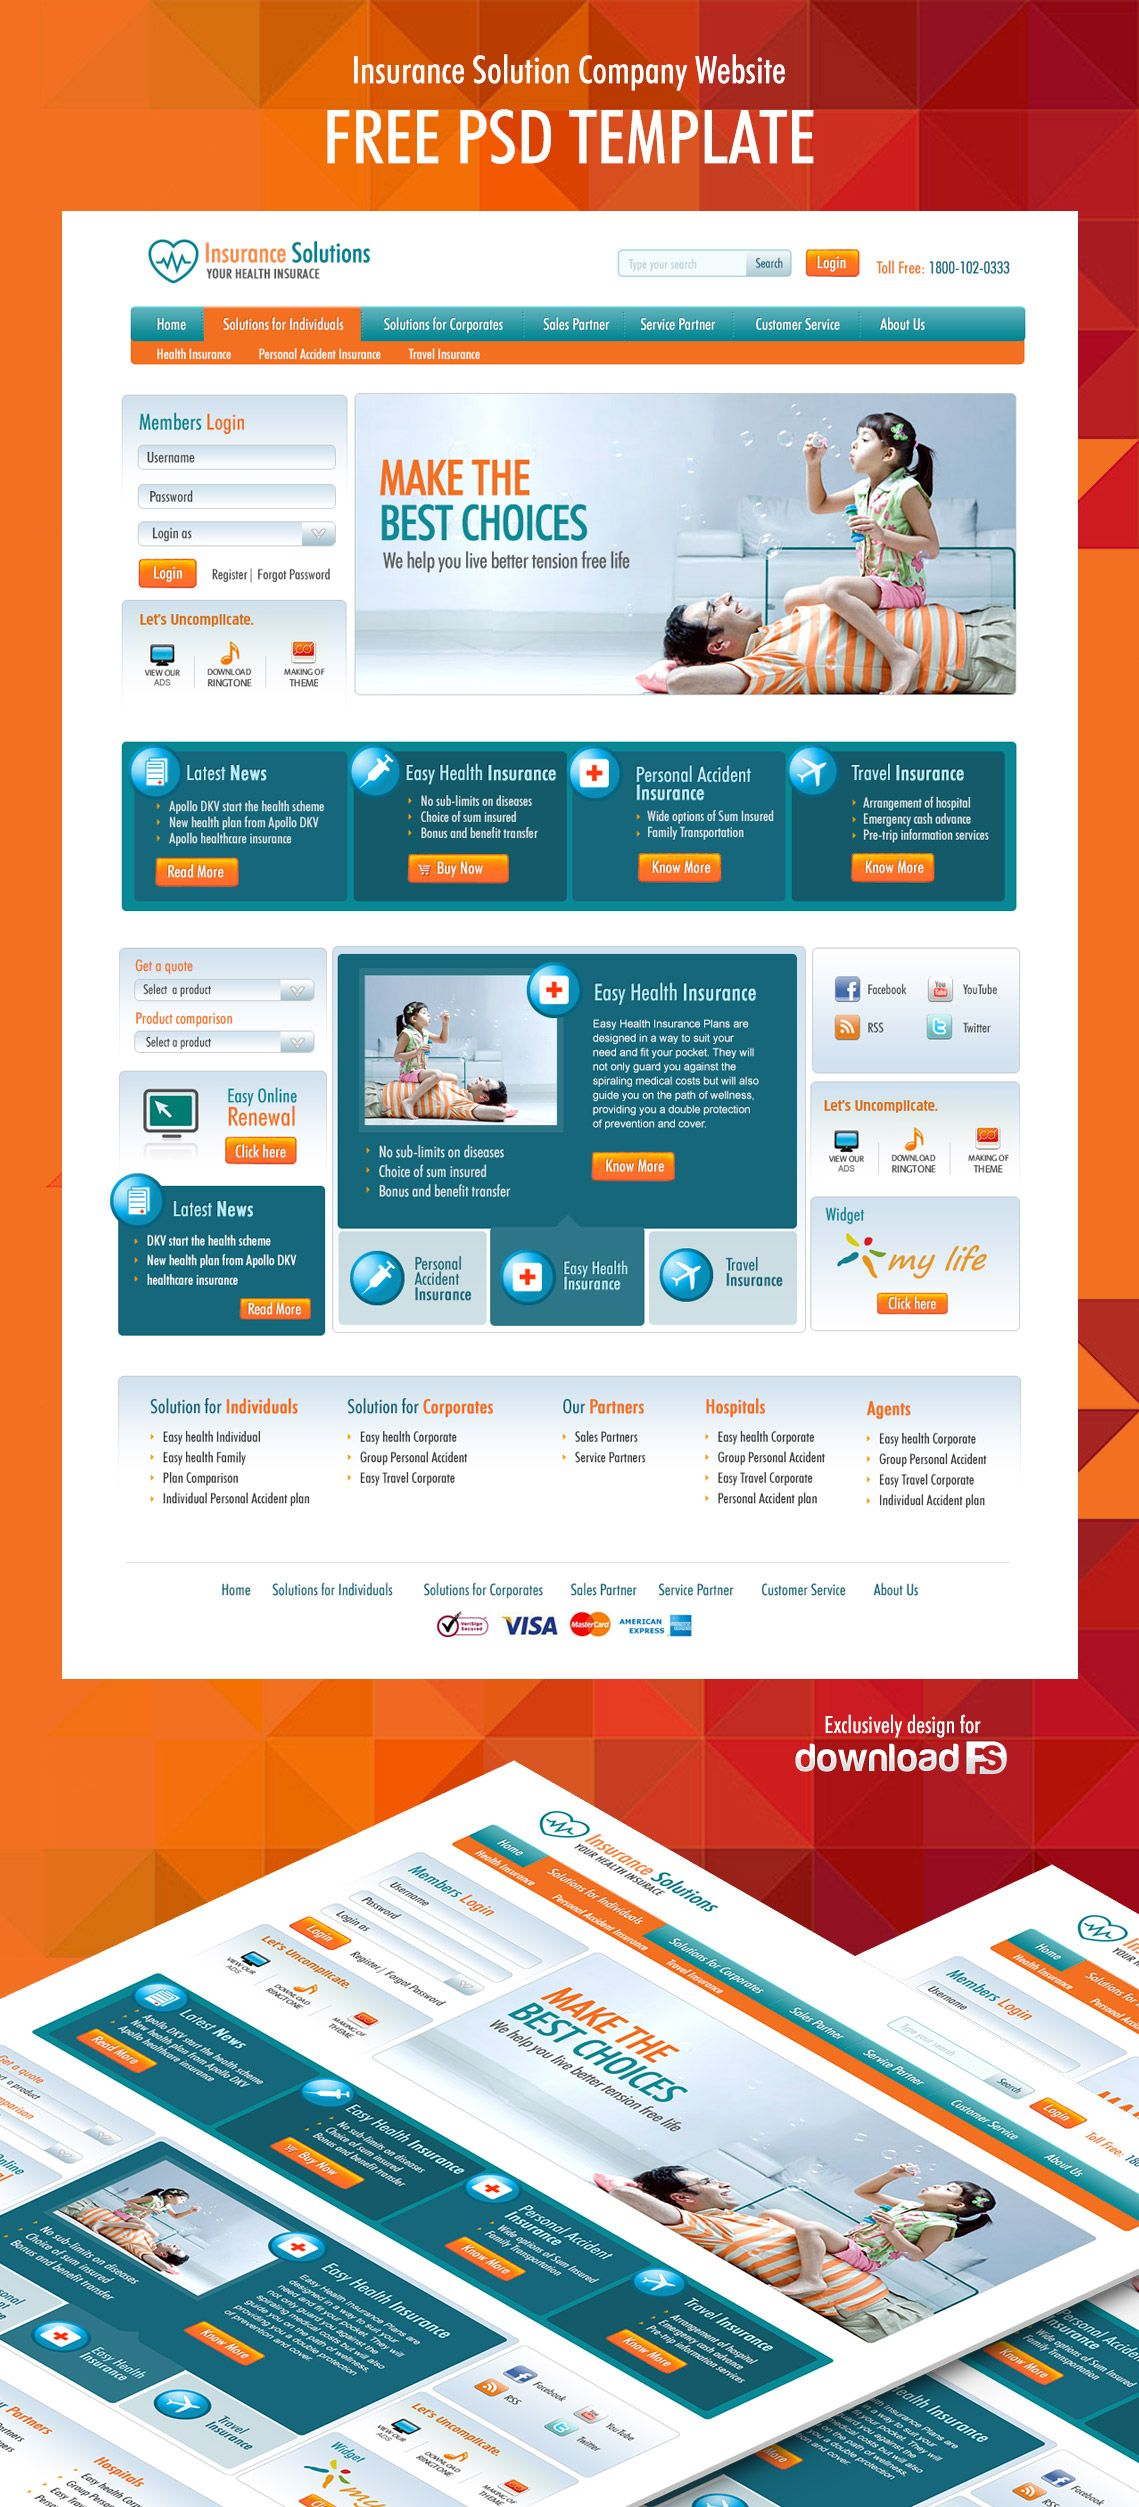 p>Download Insurance Solution Company Website Free PSD